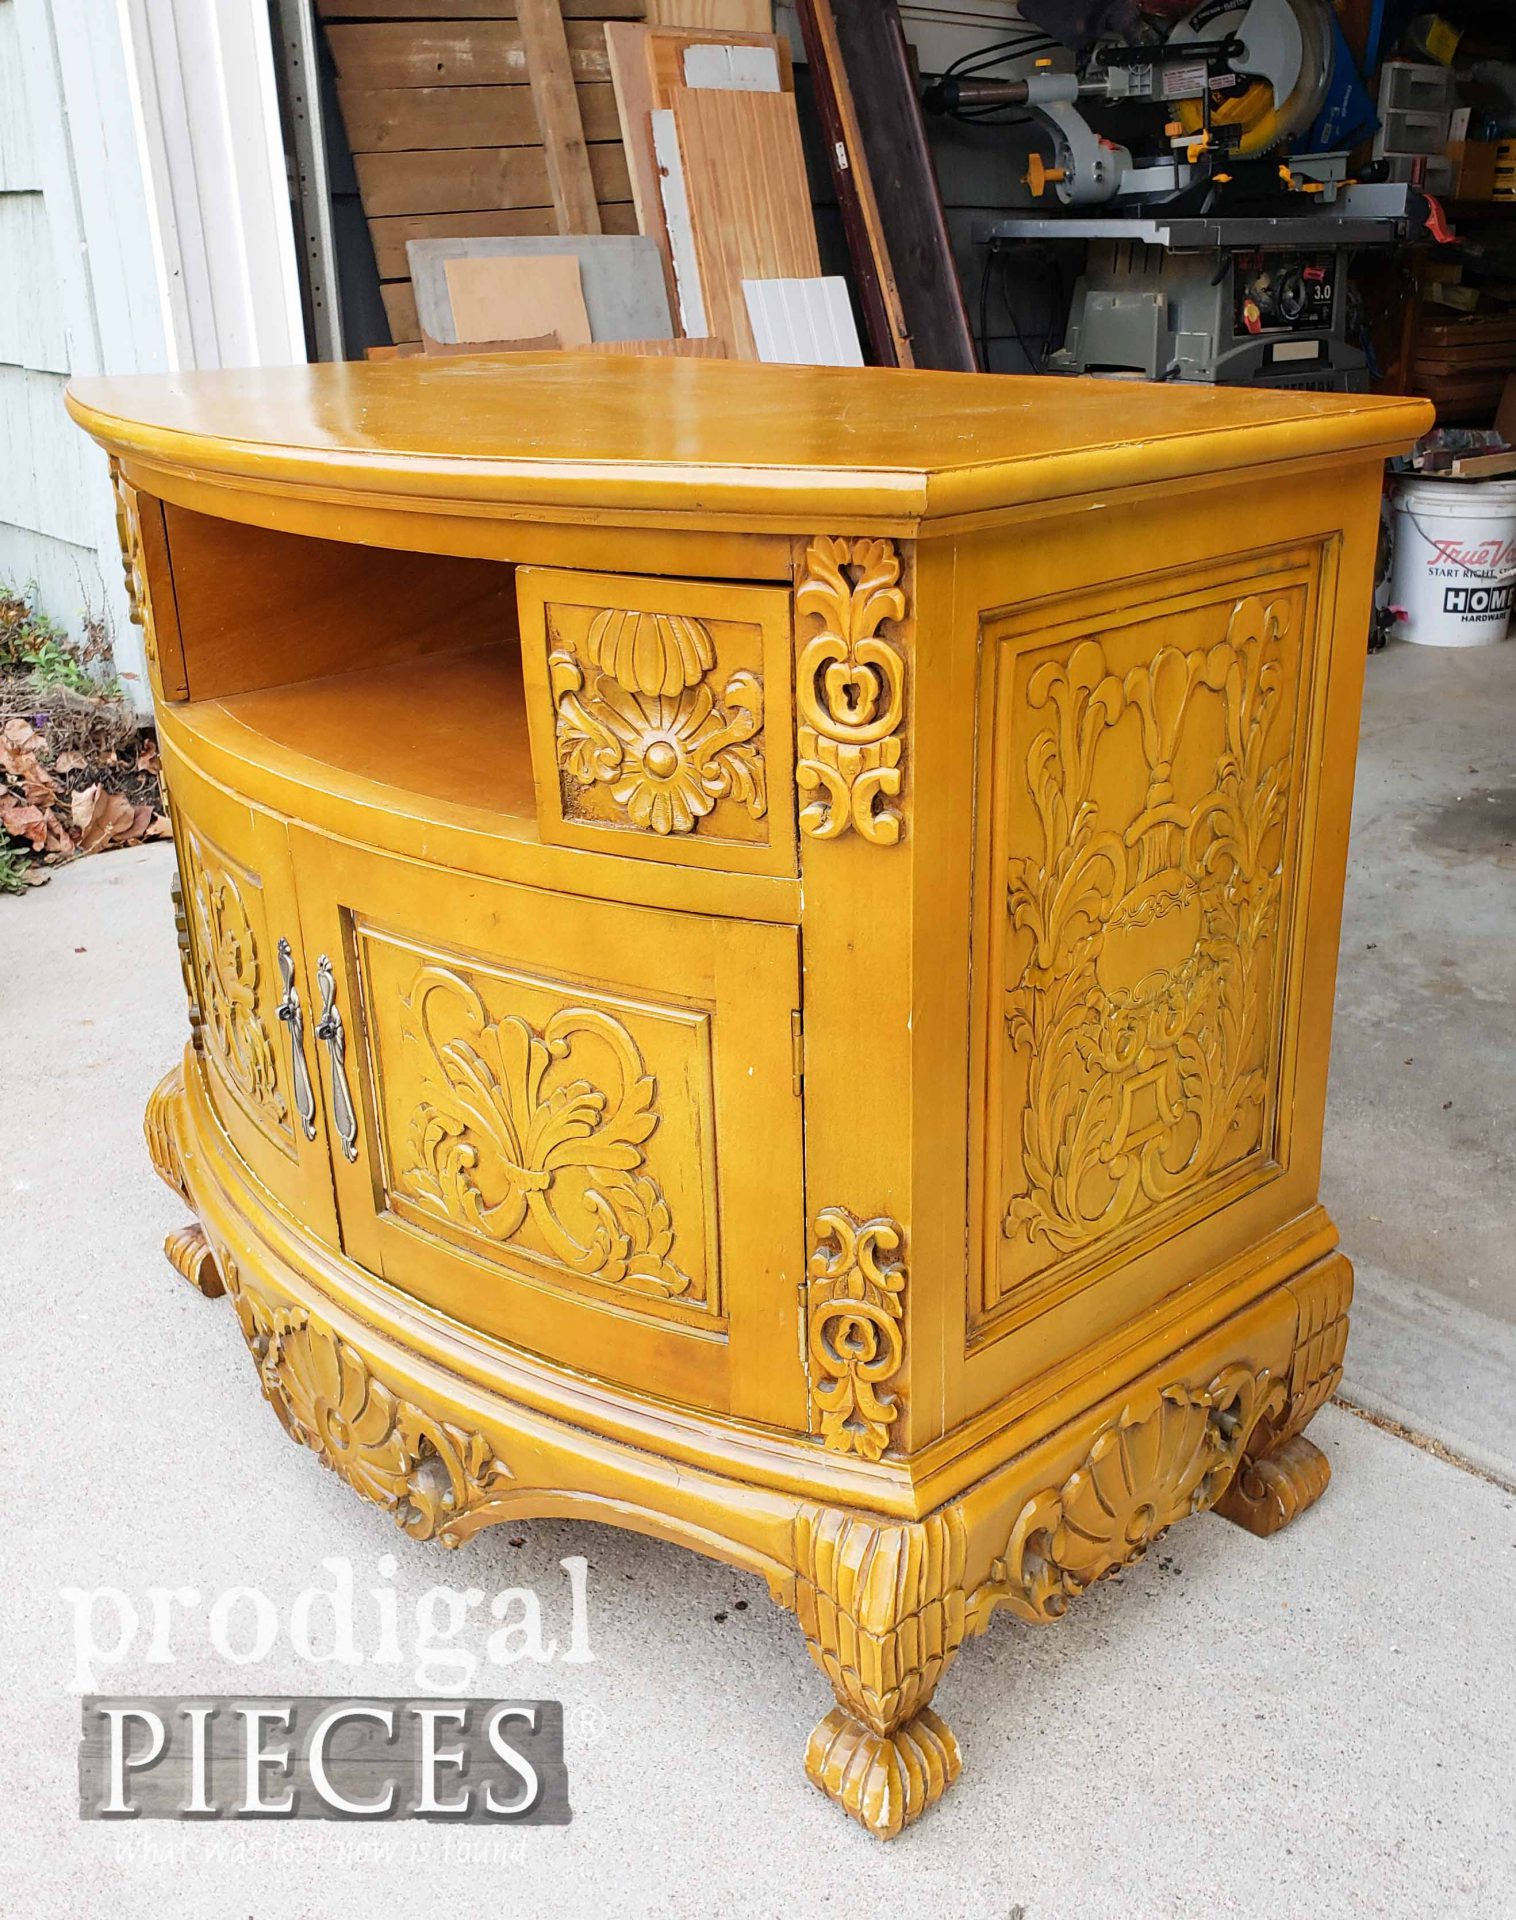 Ornate Entertainment Stand Before Being Painted by Prodigal Pieces | prodigalpieces.com